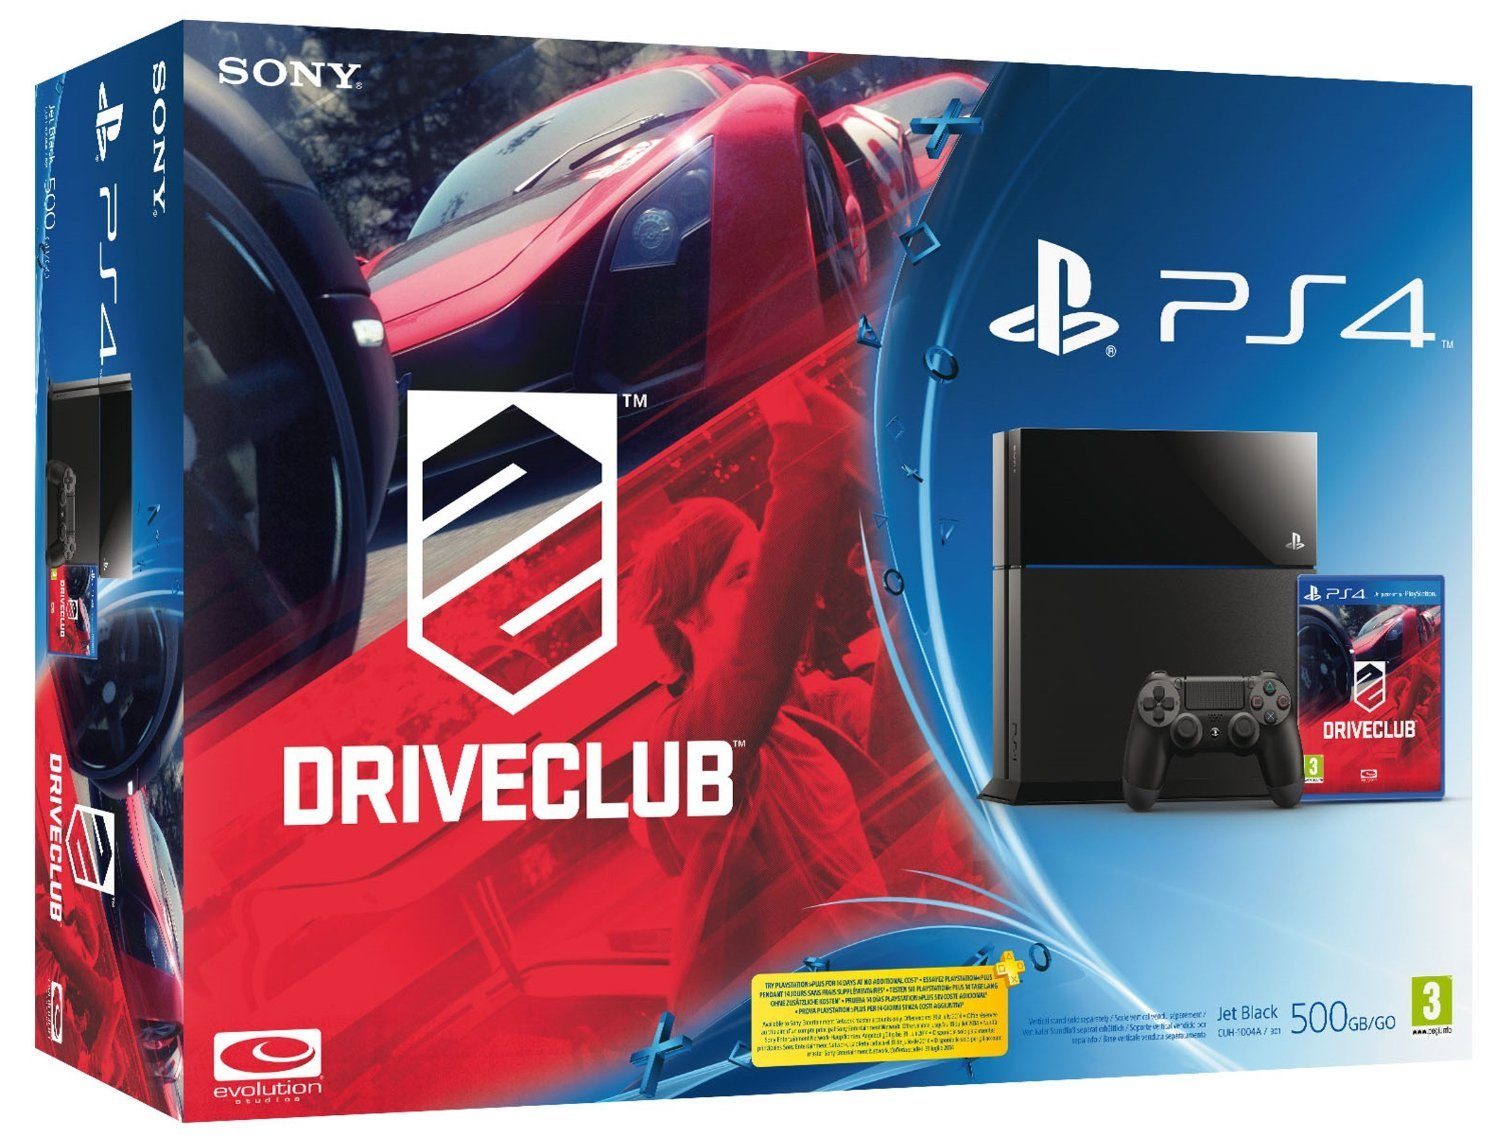 PlayStation 4: Console 500GB B Chassis + Driveclub [Bundle]